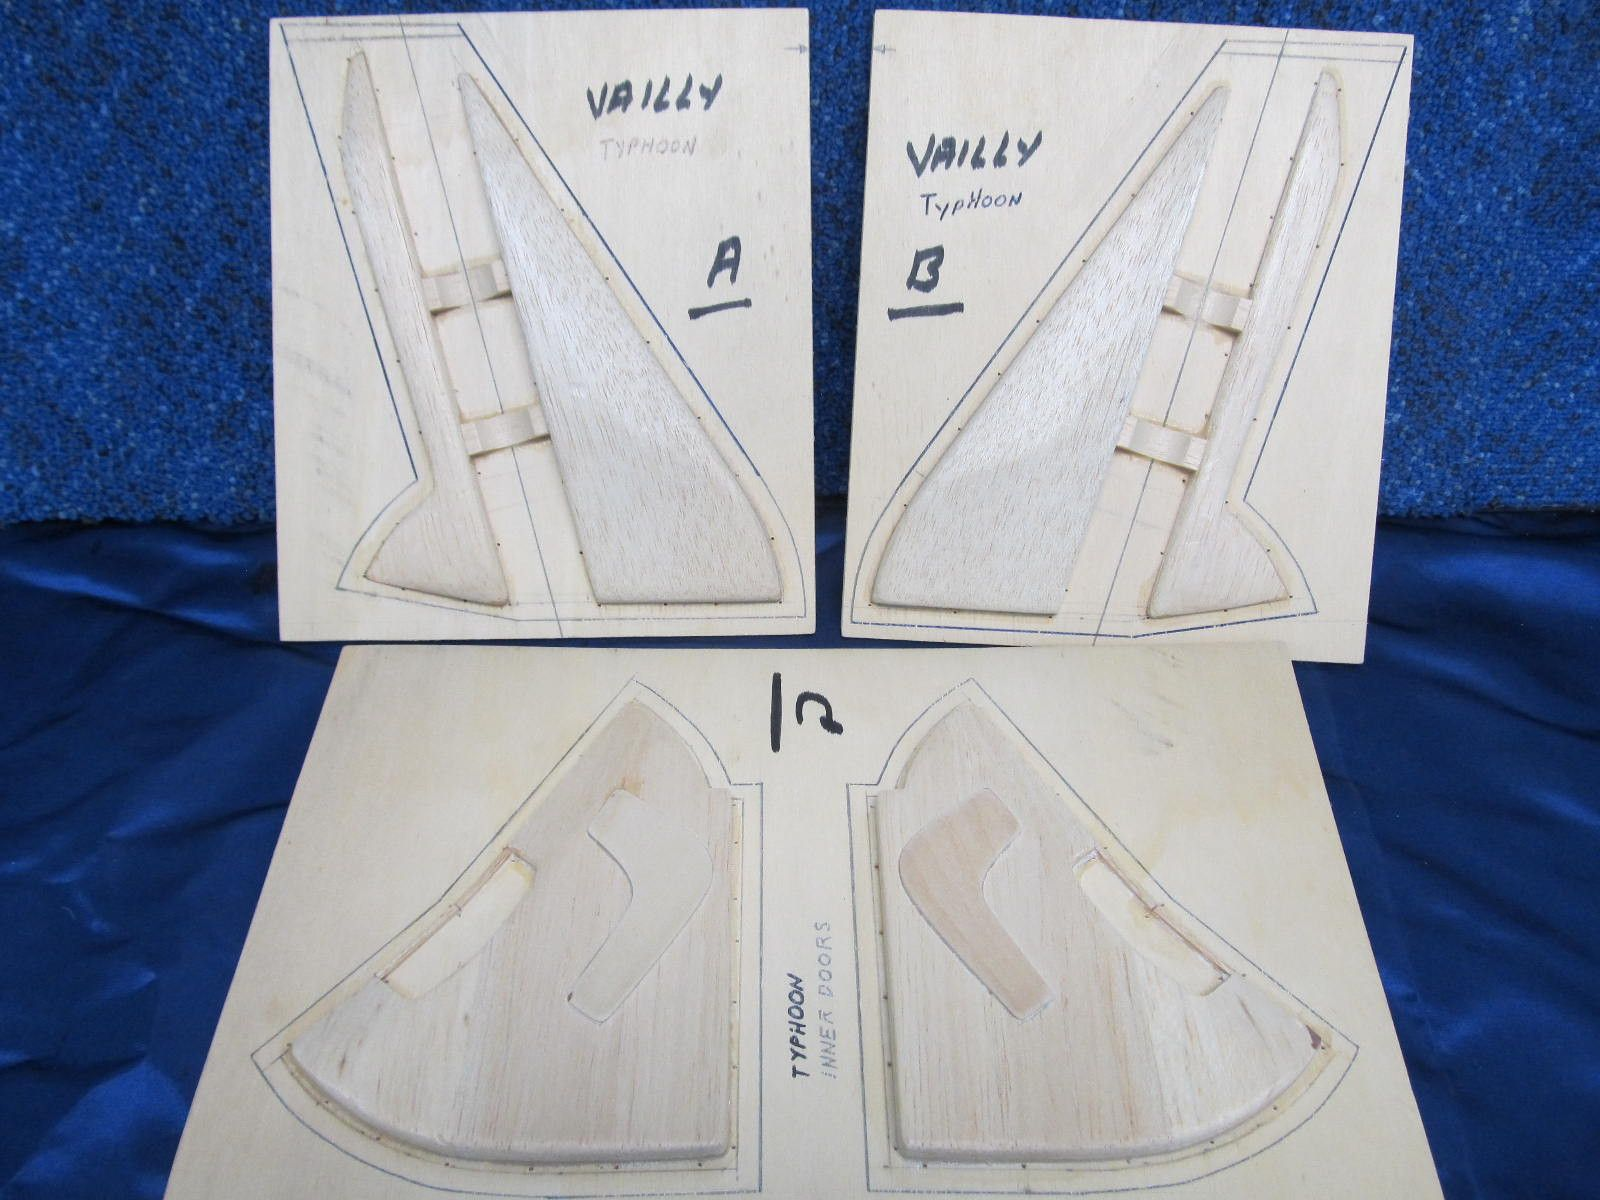 Vac-formed accessories for Vailly Typhoon